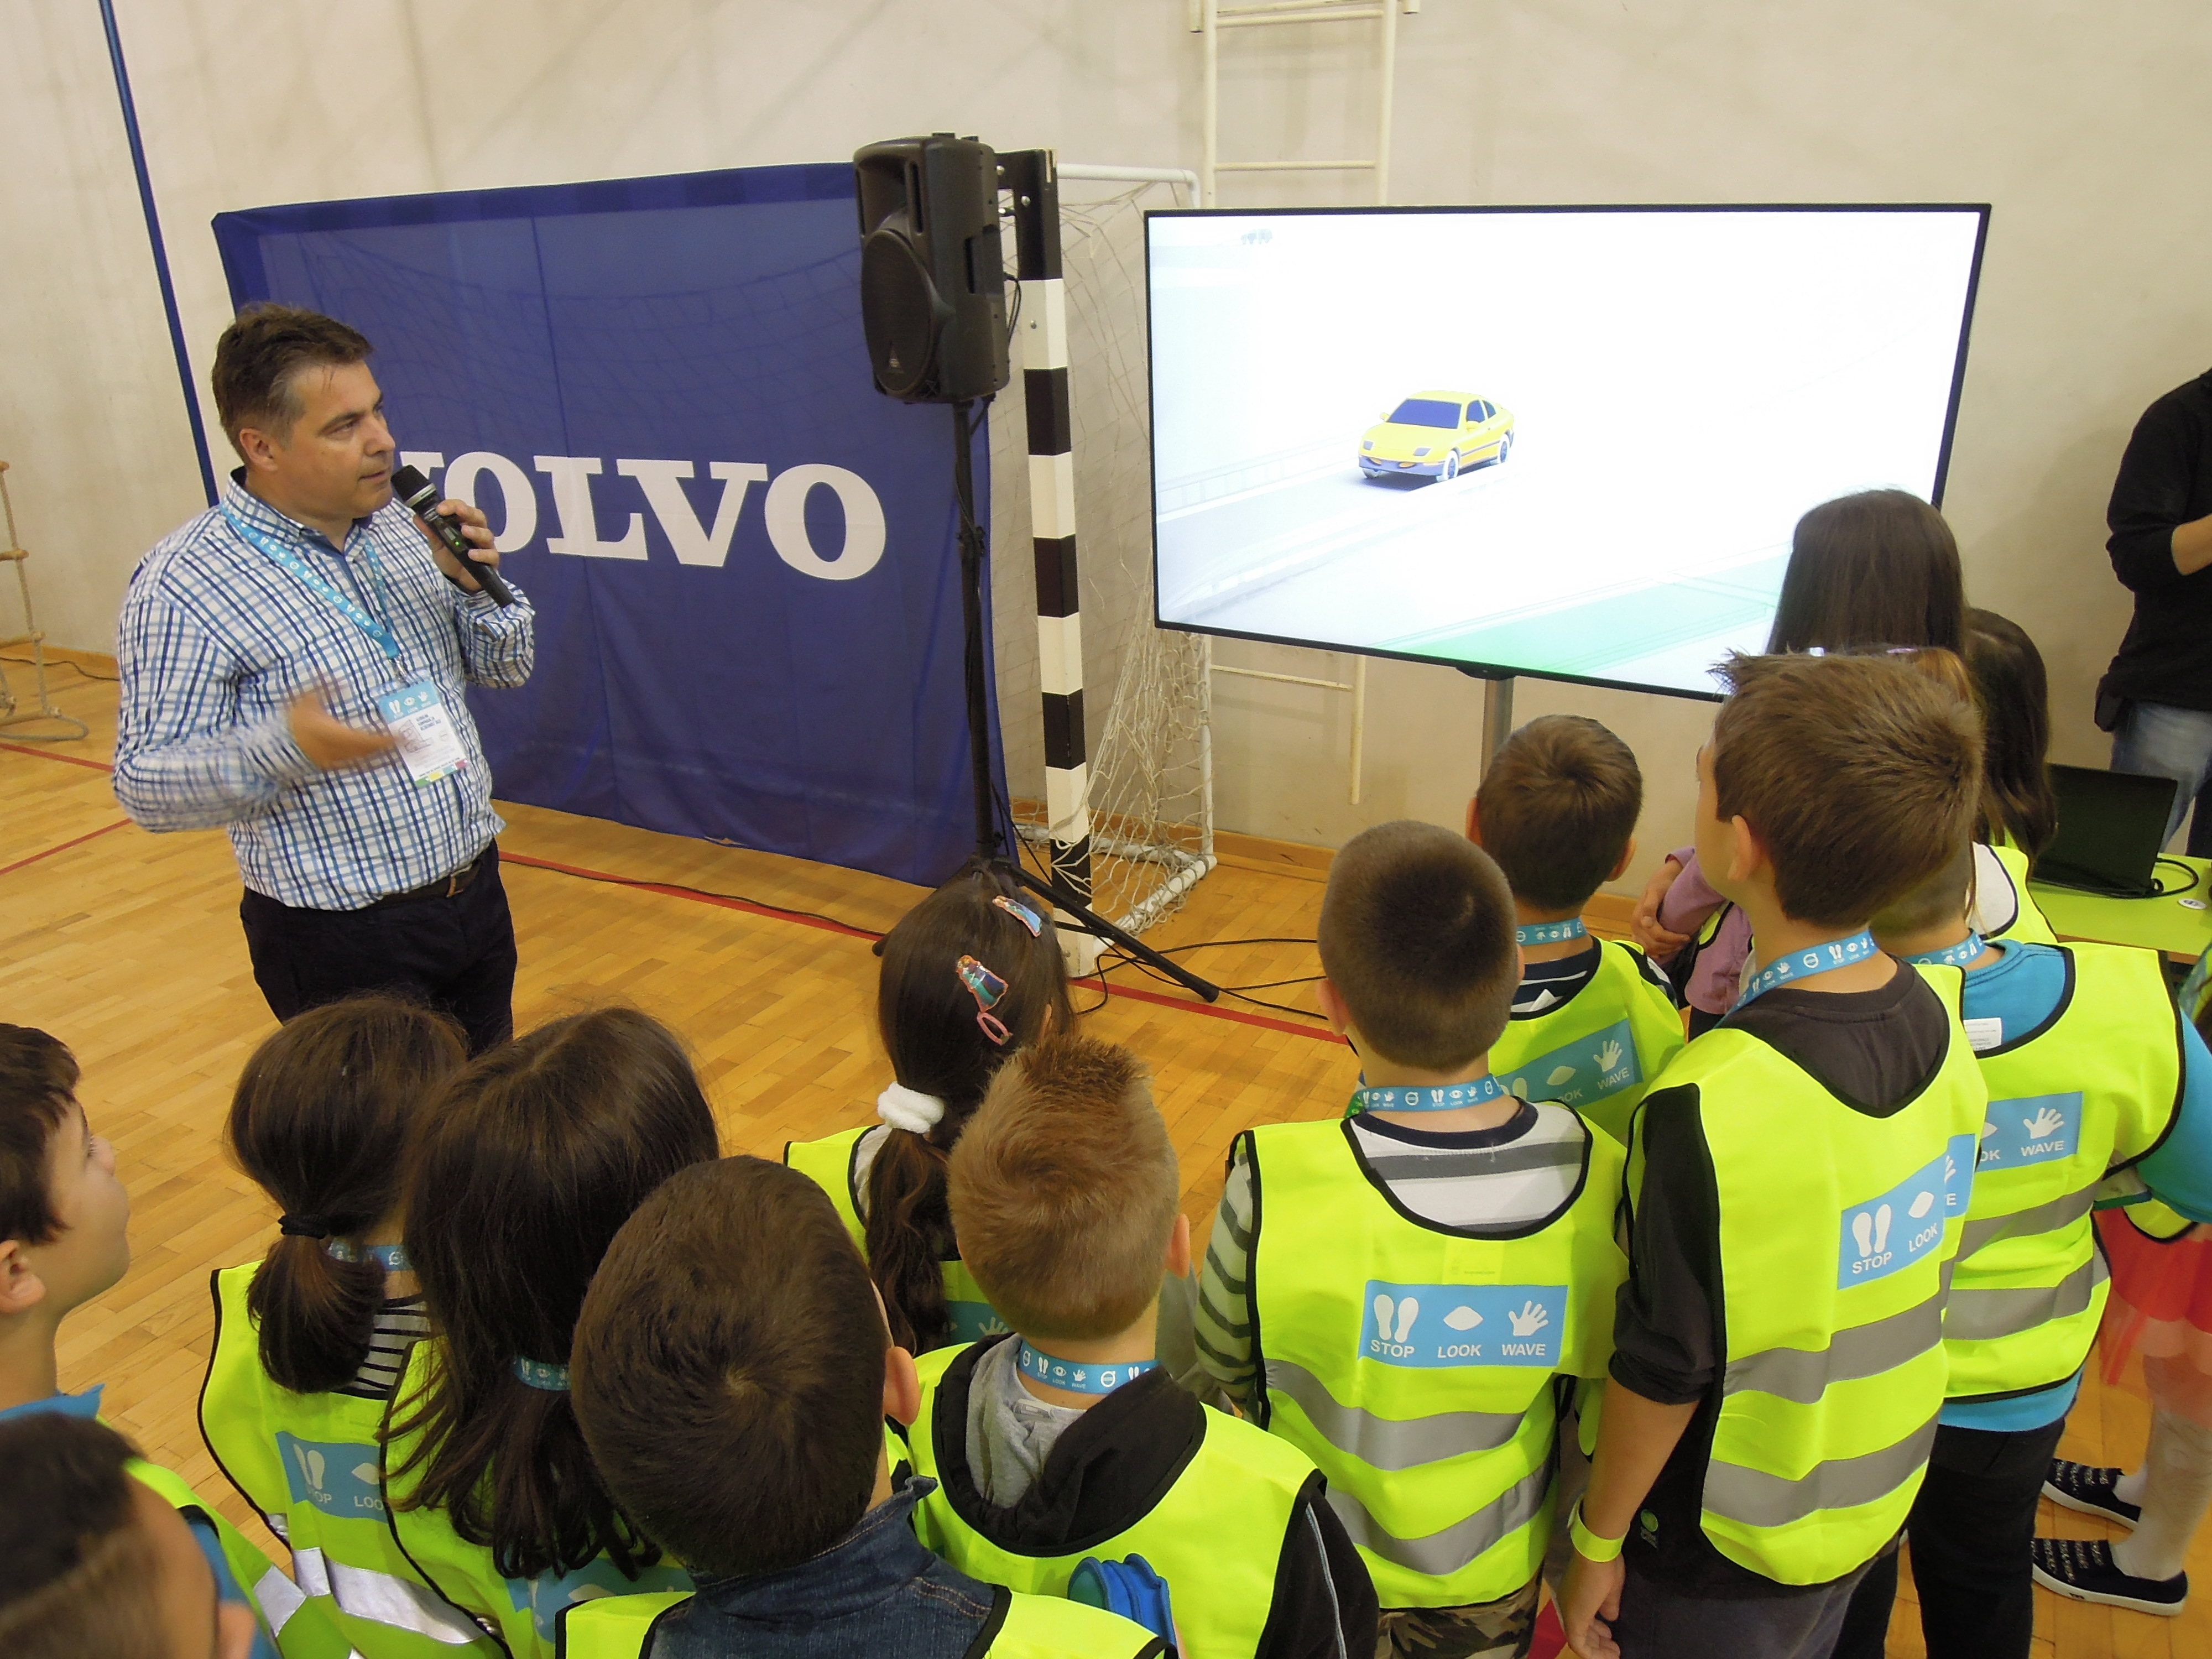 Volvo - educational workshops for children - Stop, Look, Wave, organised by Event Planner